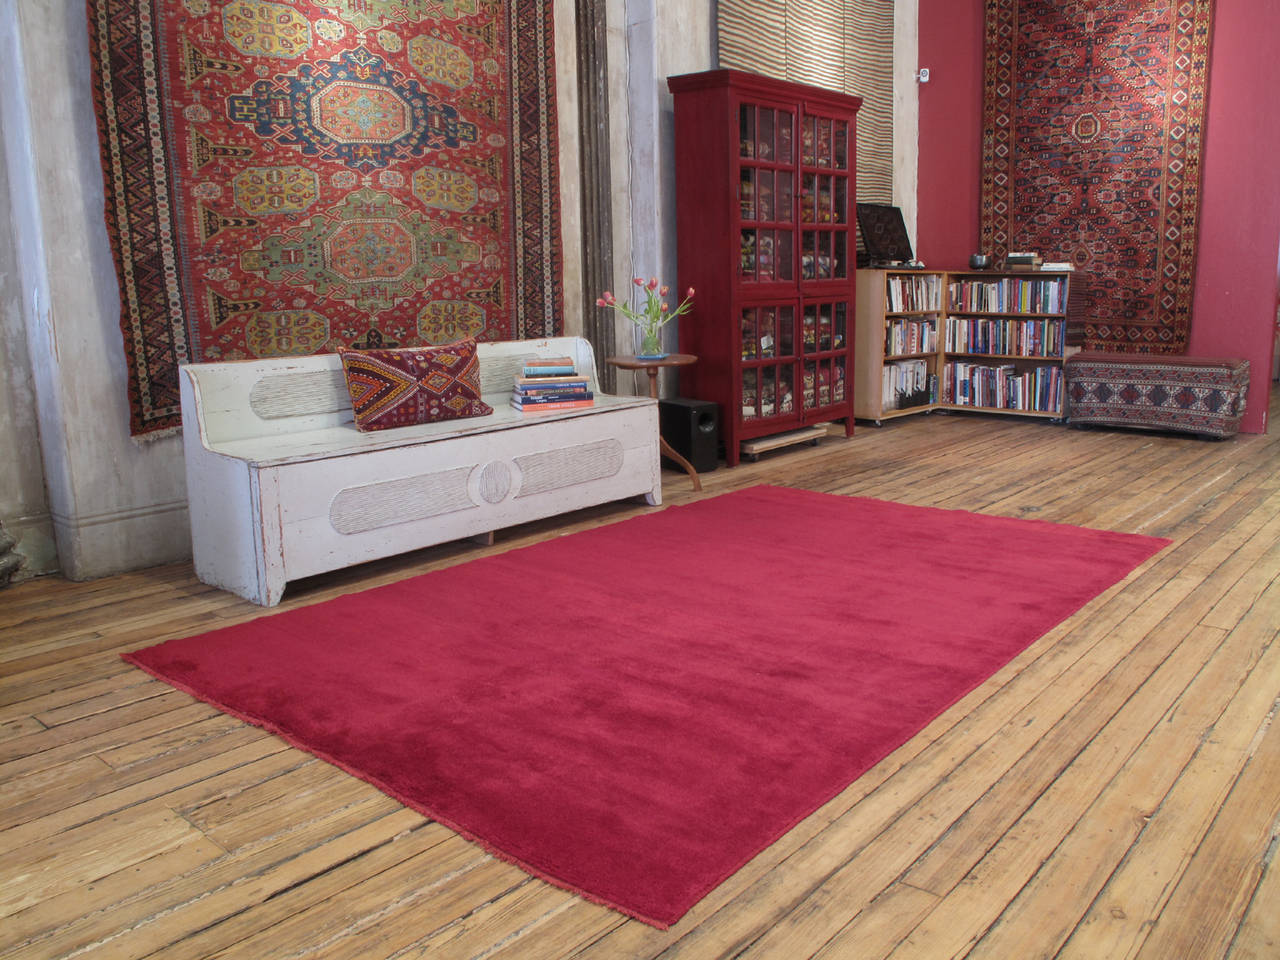 Fantastic Red Tulu carpet. A superb old village rug or carpet, woven with high pile, in the